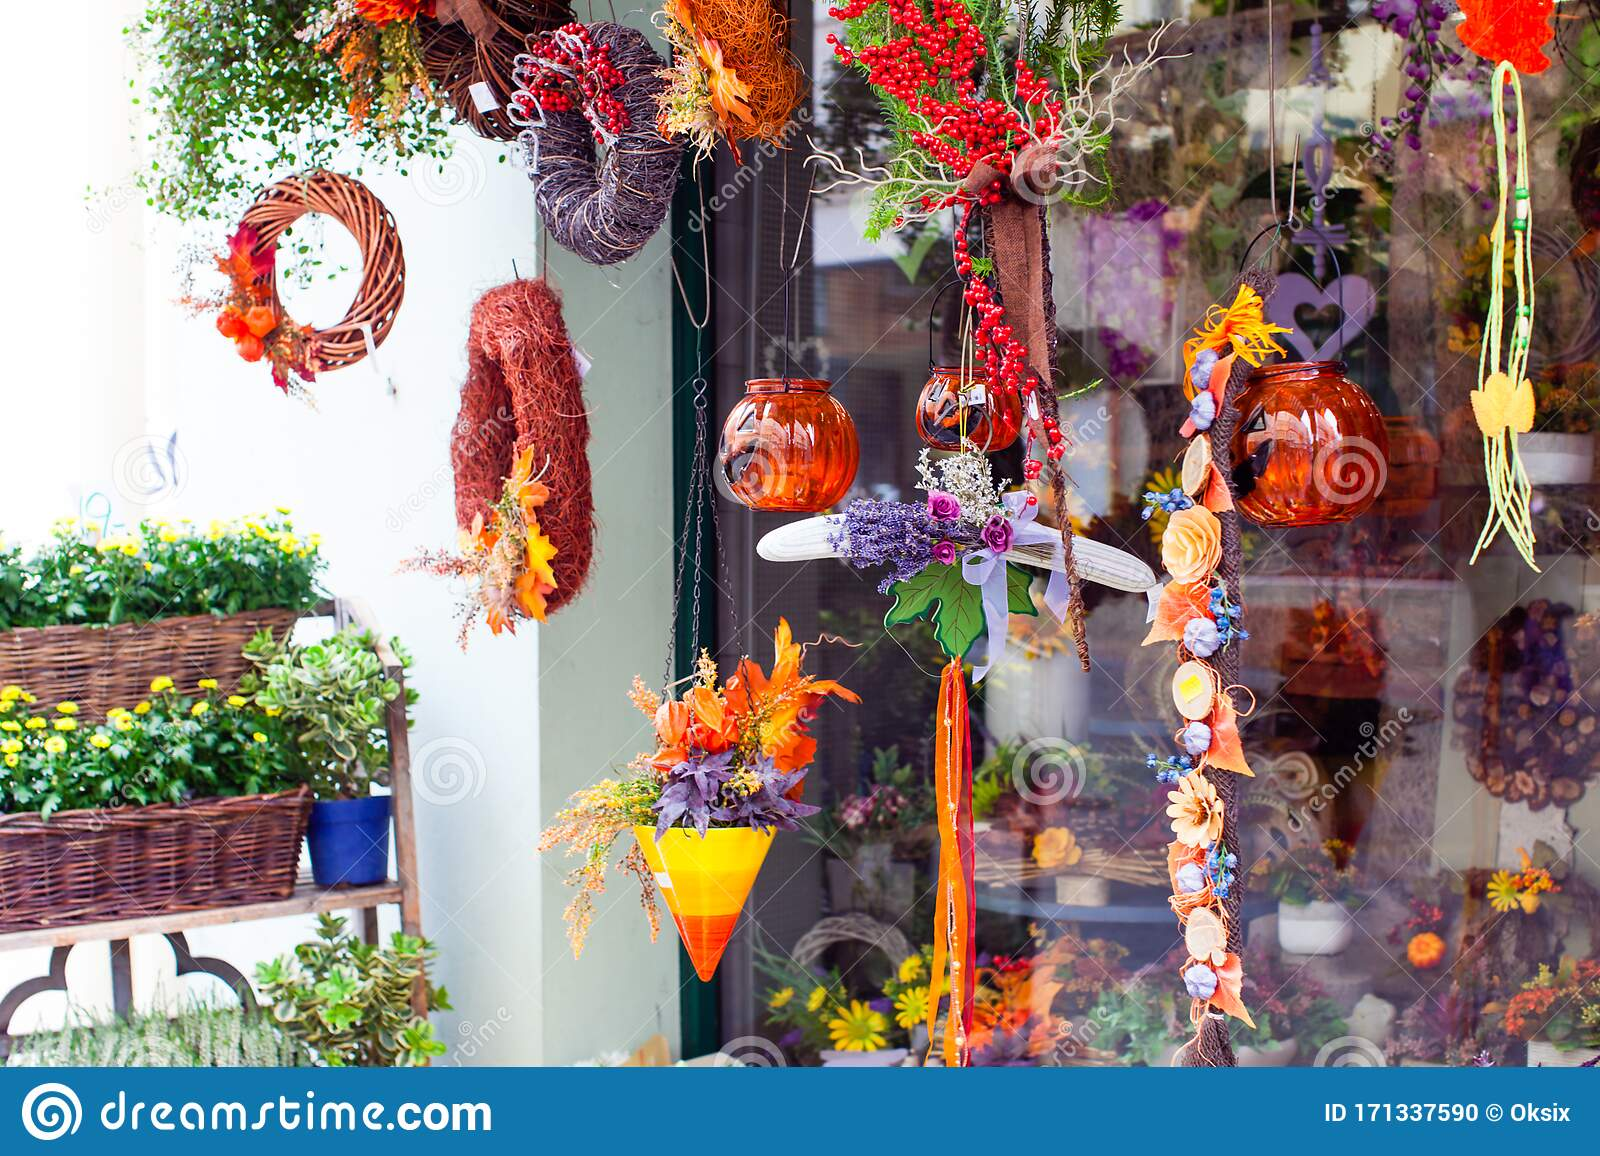 Stylish Decor Items For Autumn Holiday In Front Of Shop Window ...